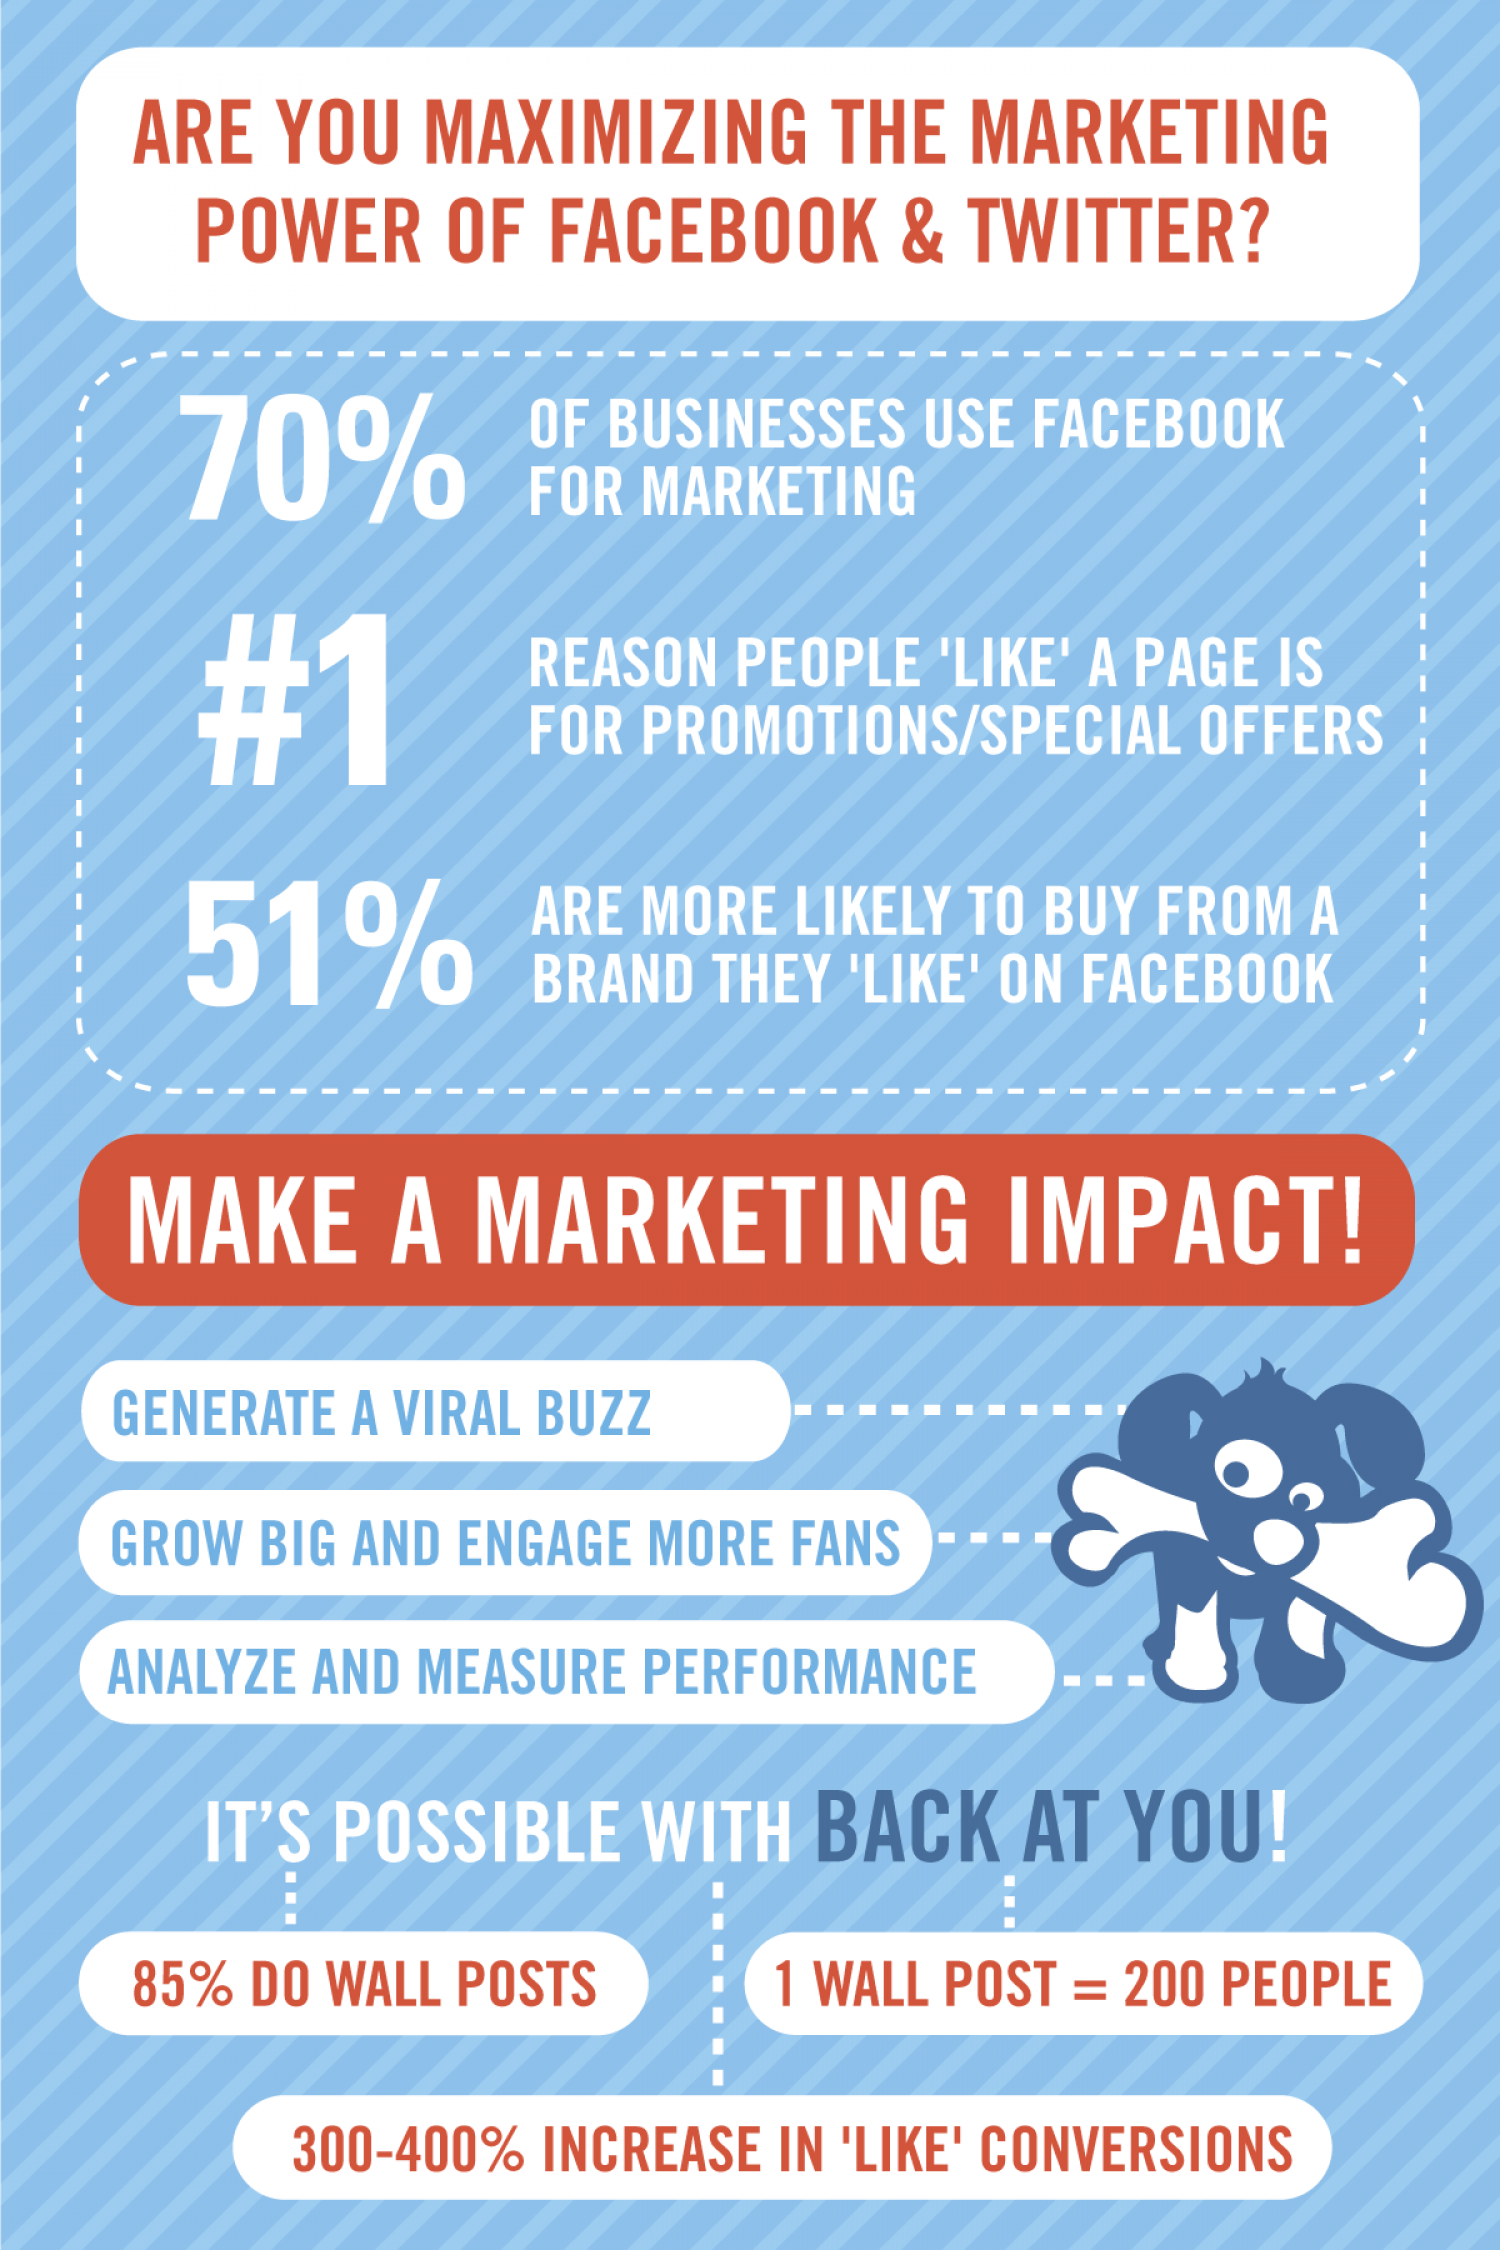 Maximizing The Marketing Power of Facebook and Twitter Infographic